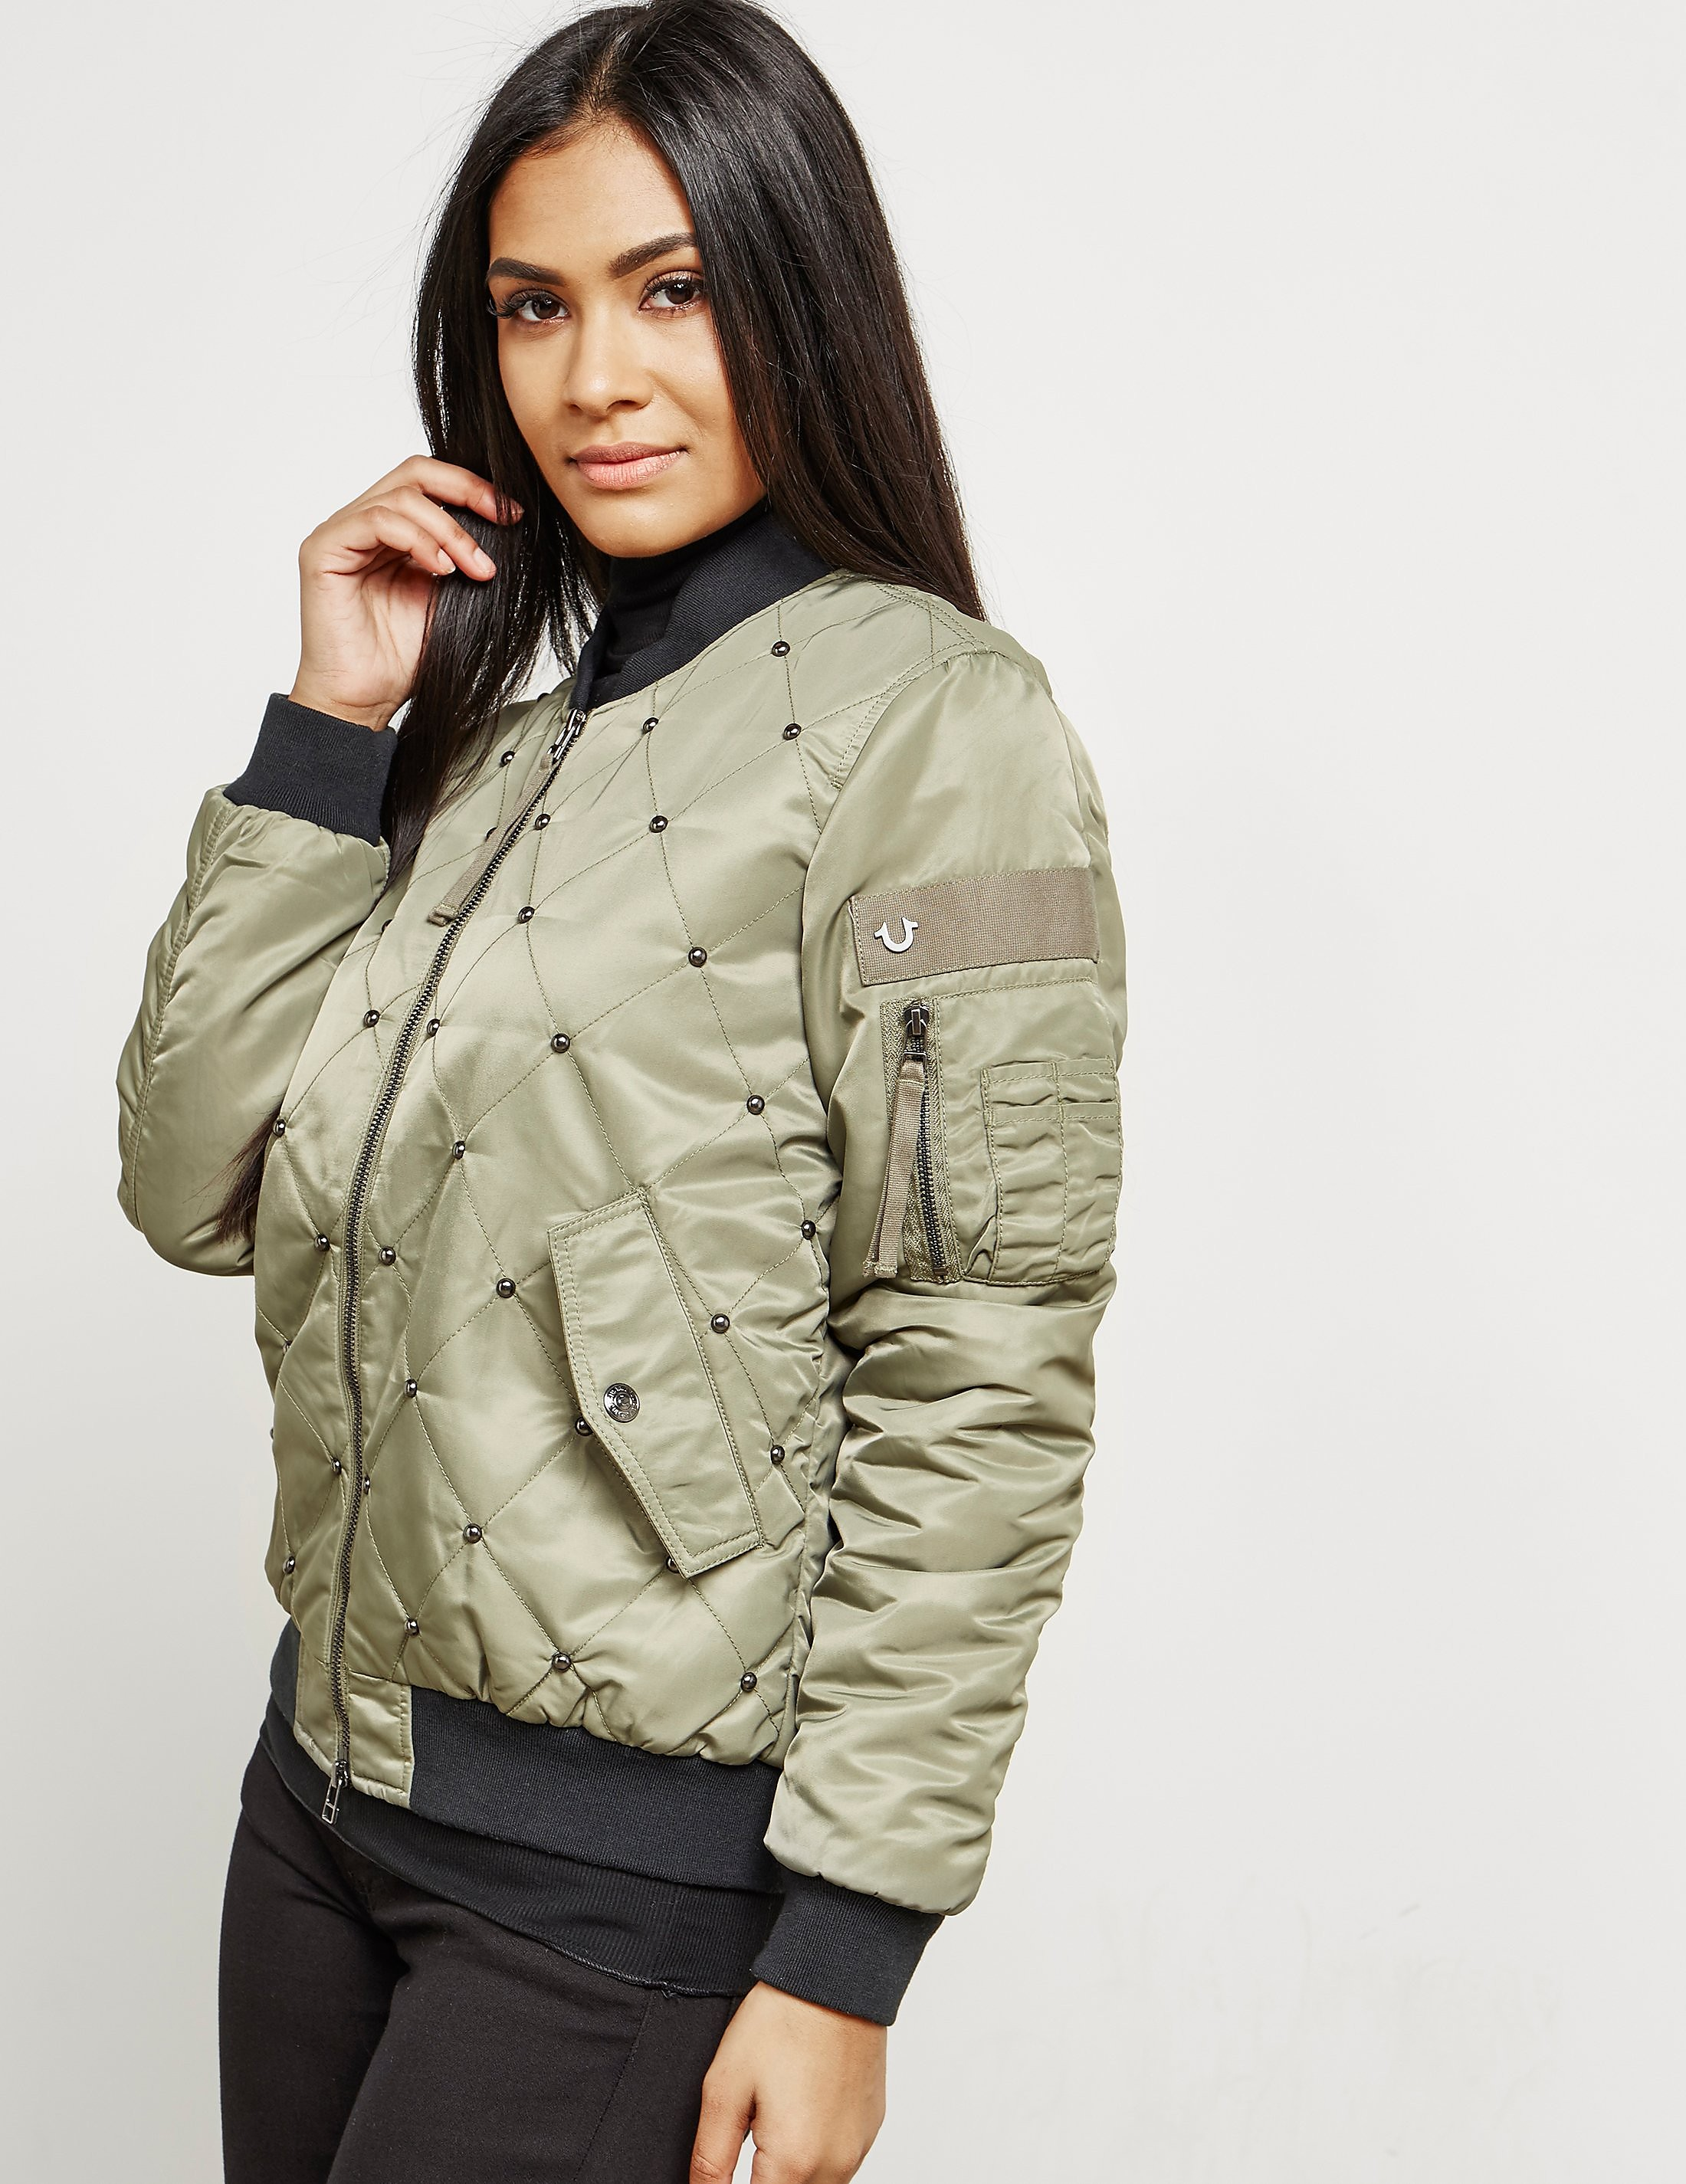 True Religion Chalk Bomber Jacket